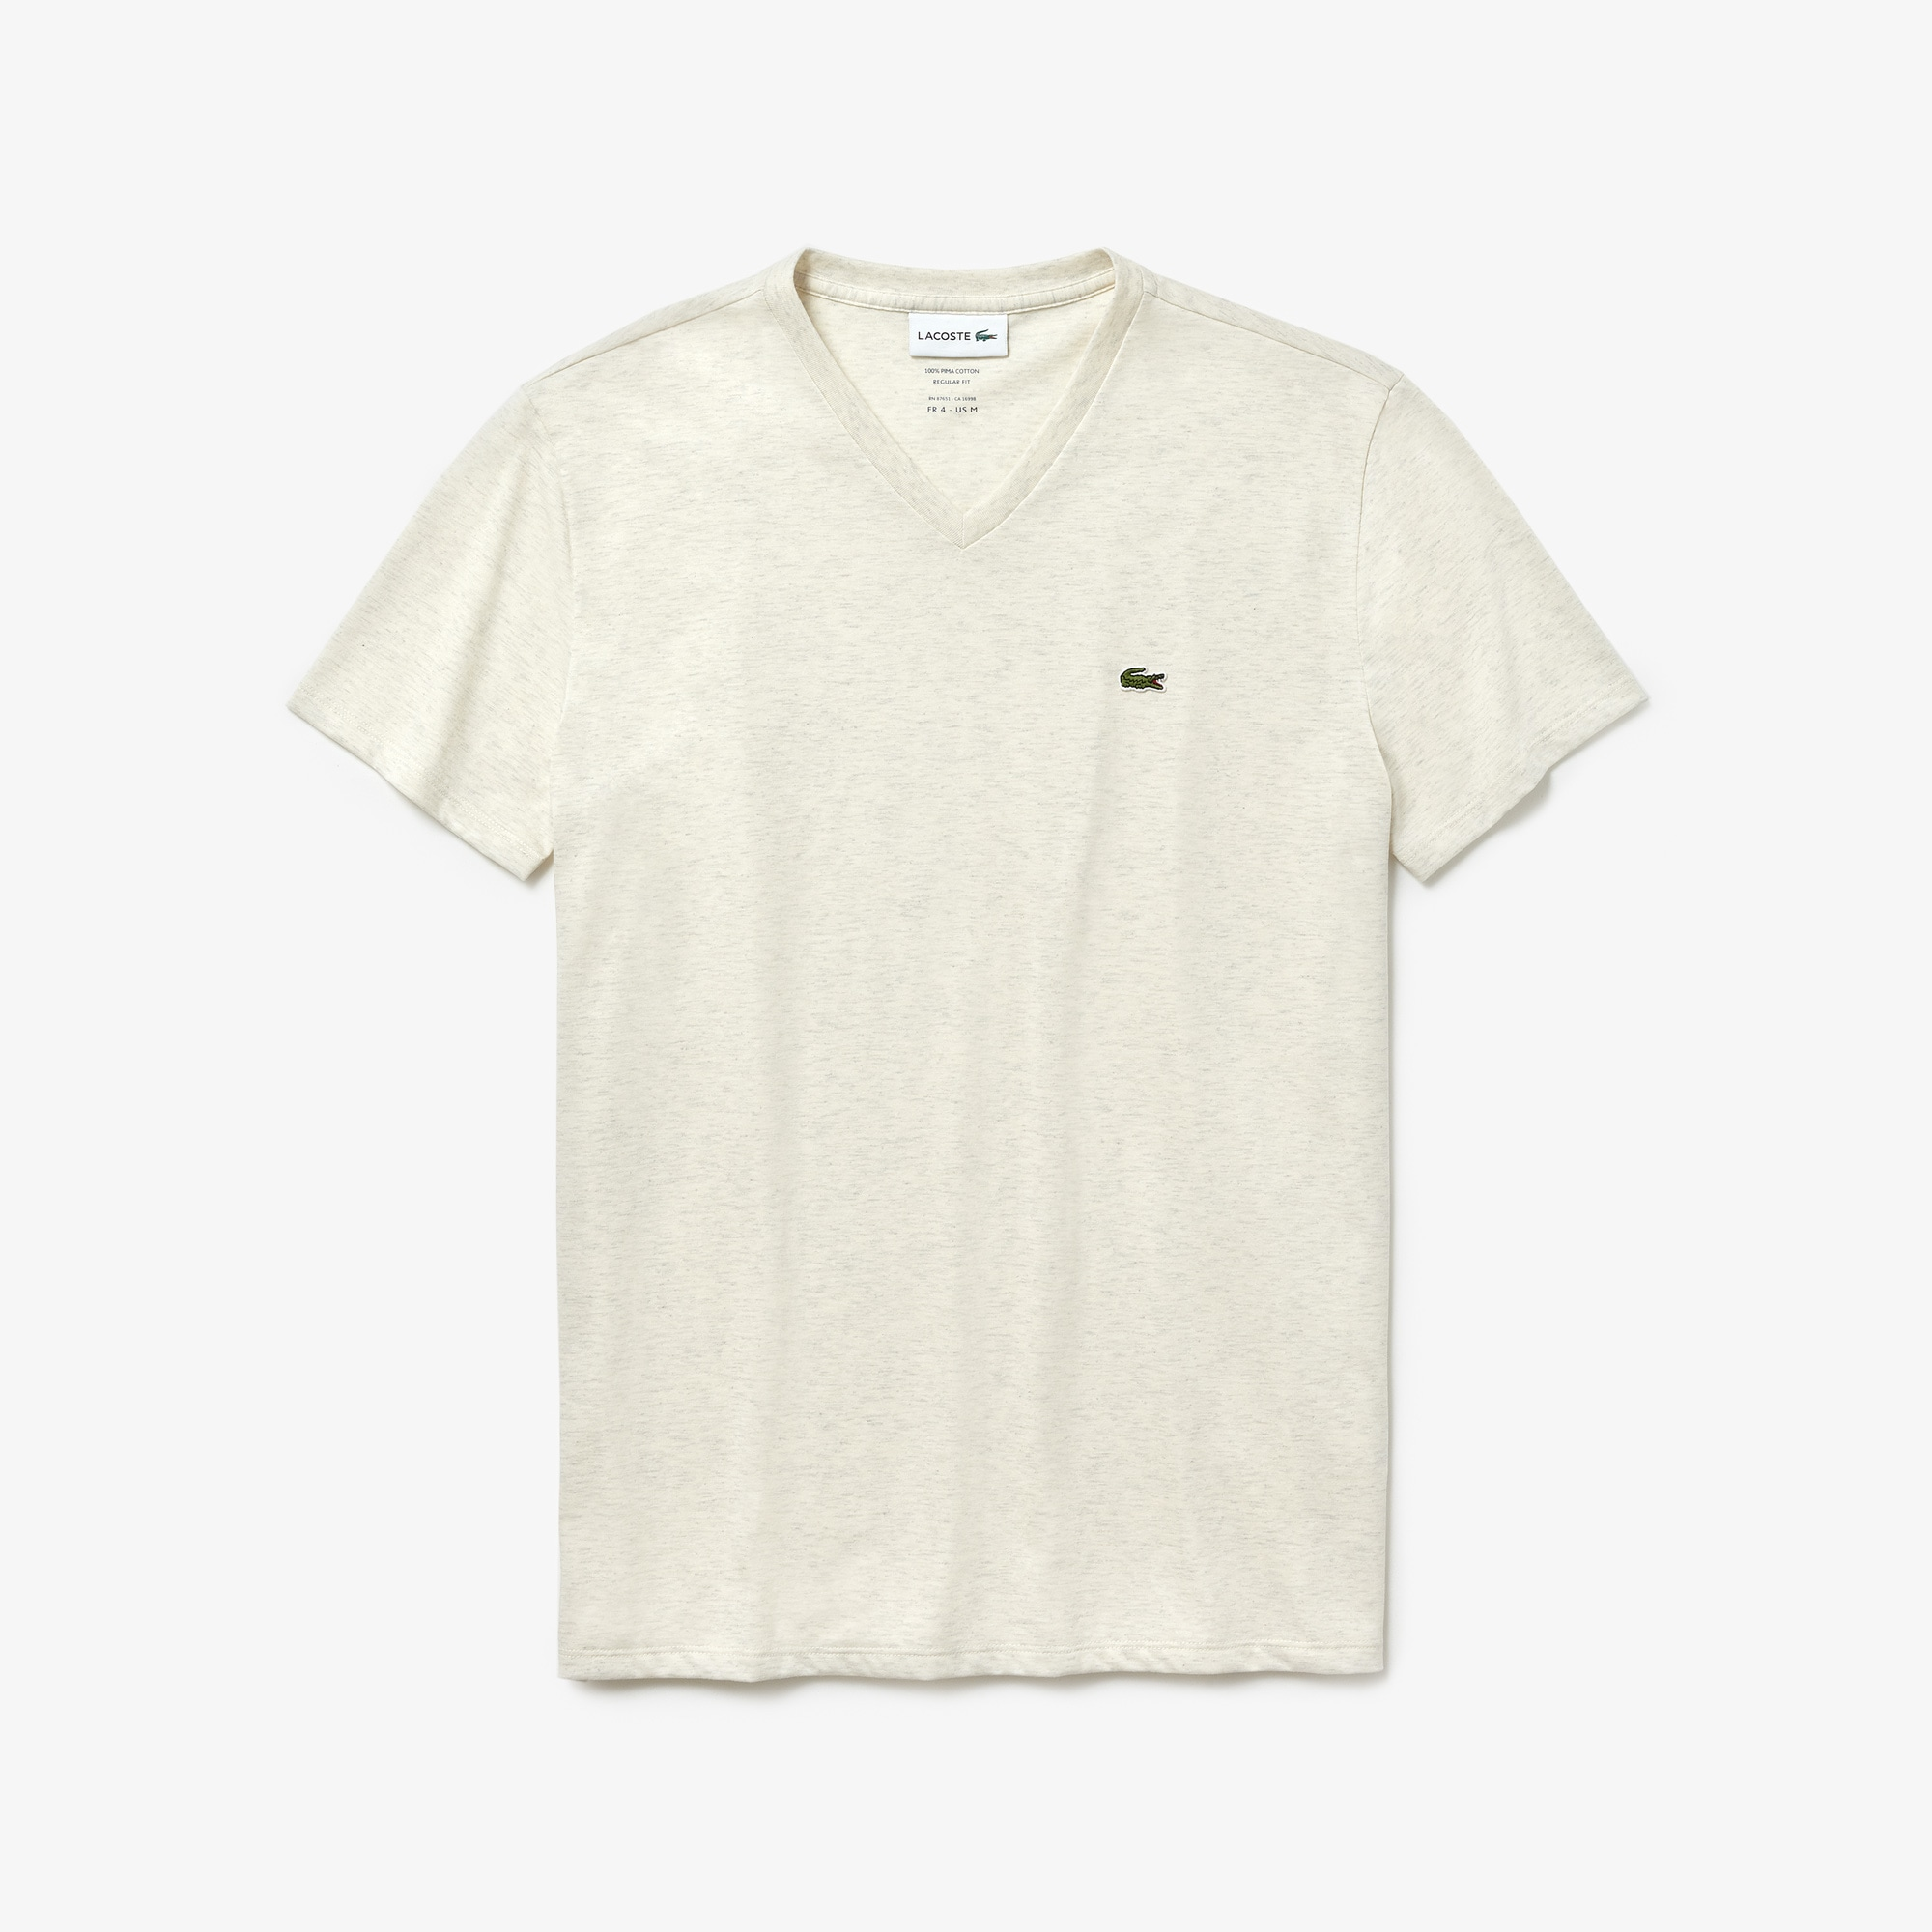 Men's V-Neck Pima Cotton T-Shirt